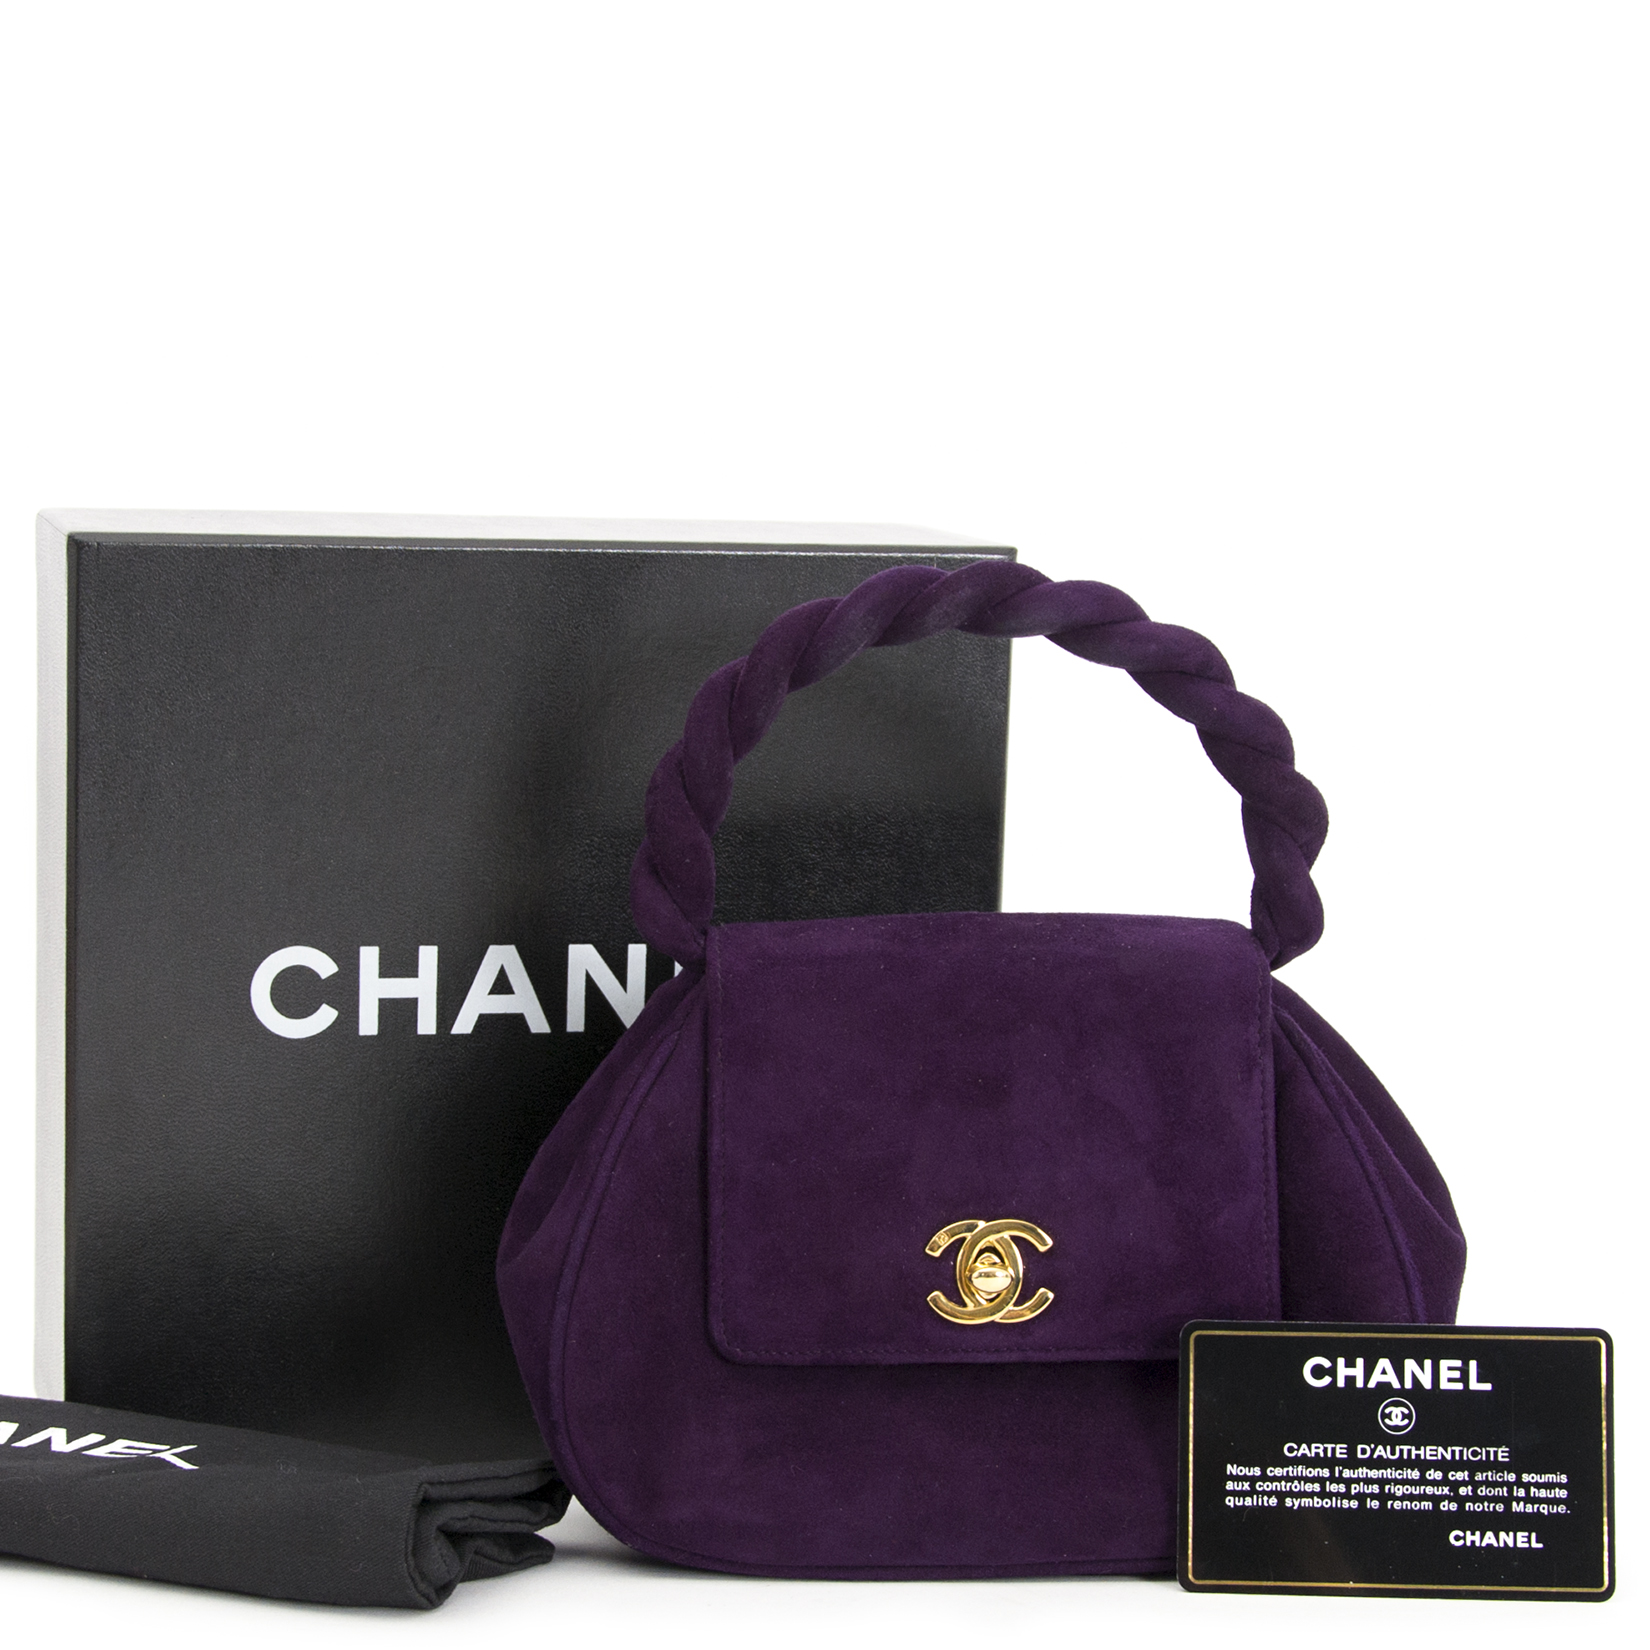 looking for a secondhand Chanel Vintage Purple Suede Mini Bag